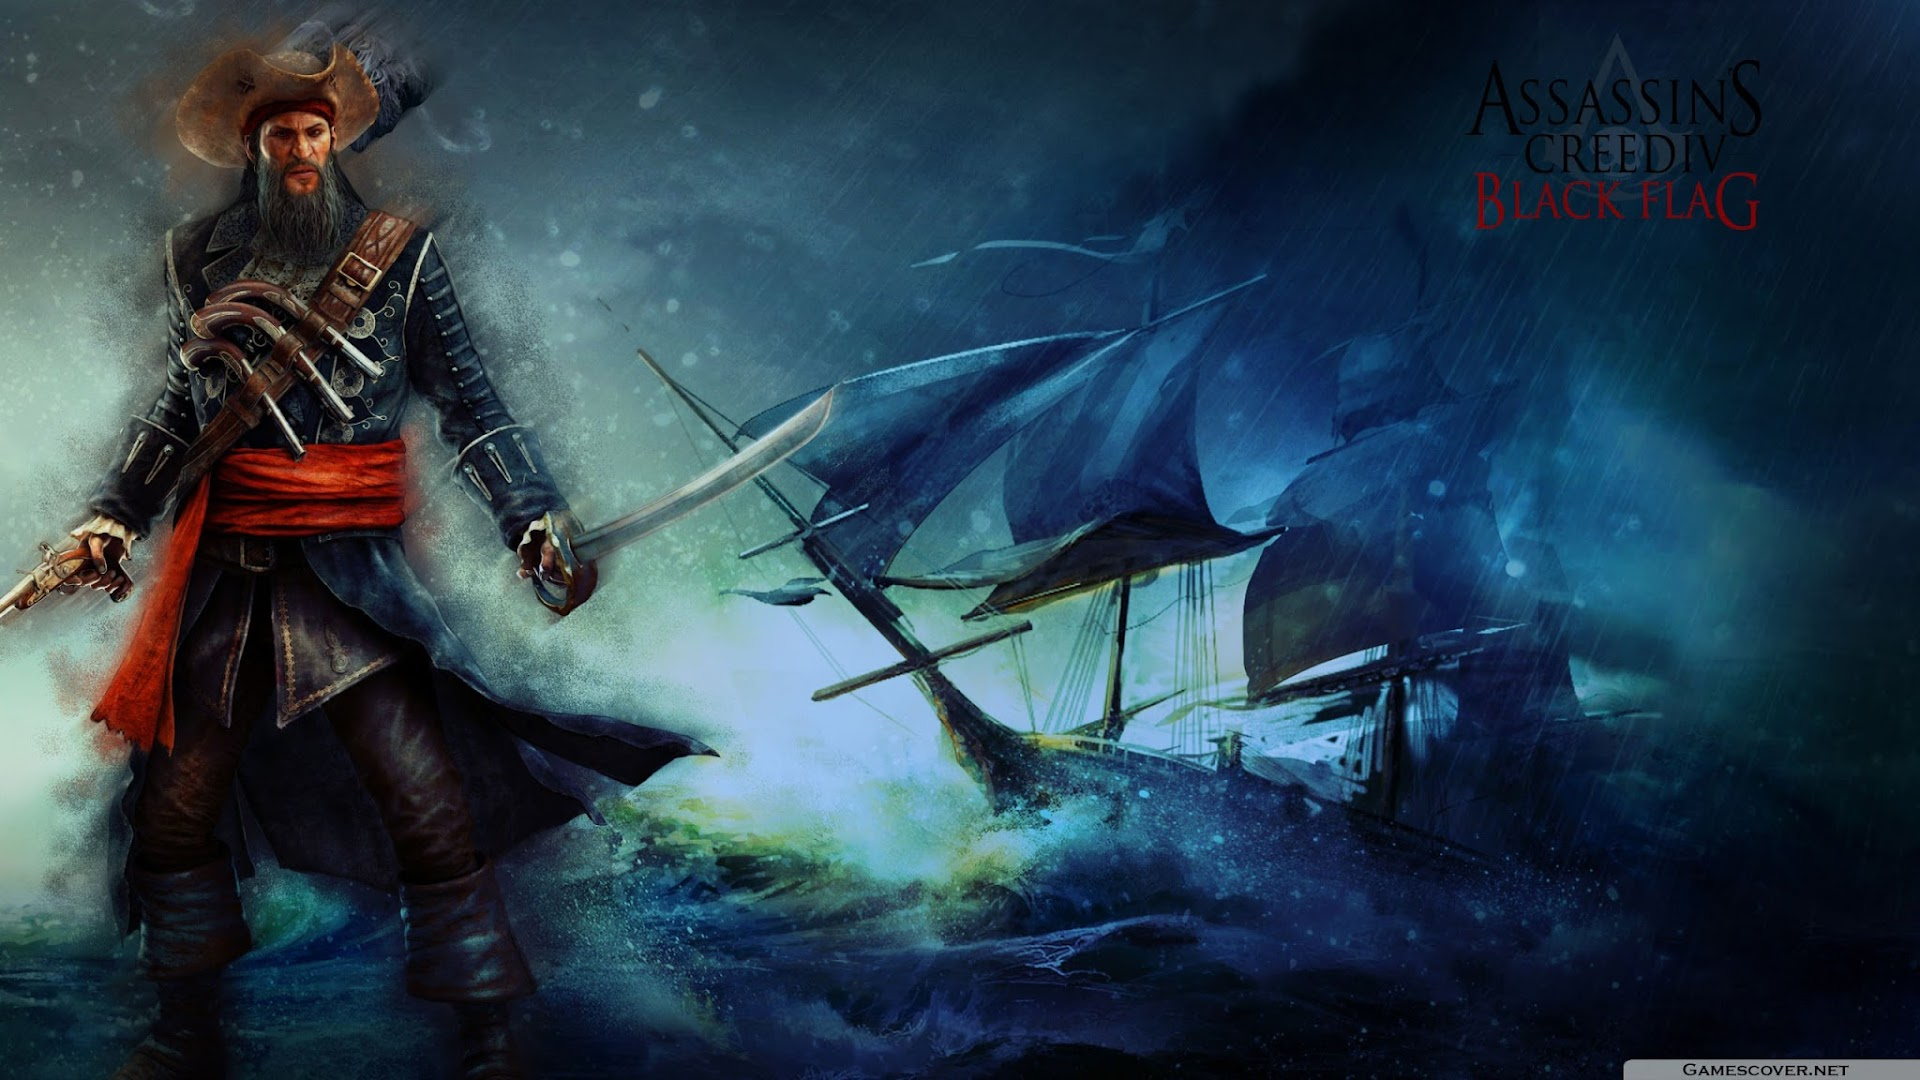 Assassin's Creed Black Flag HD Wallpapers - Read games review, play online games & download ...